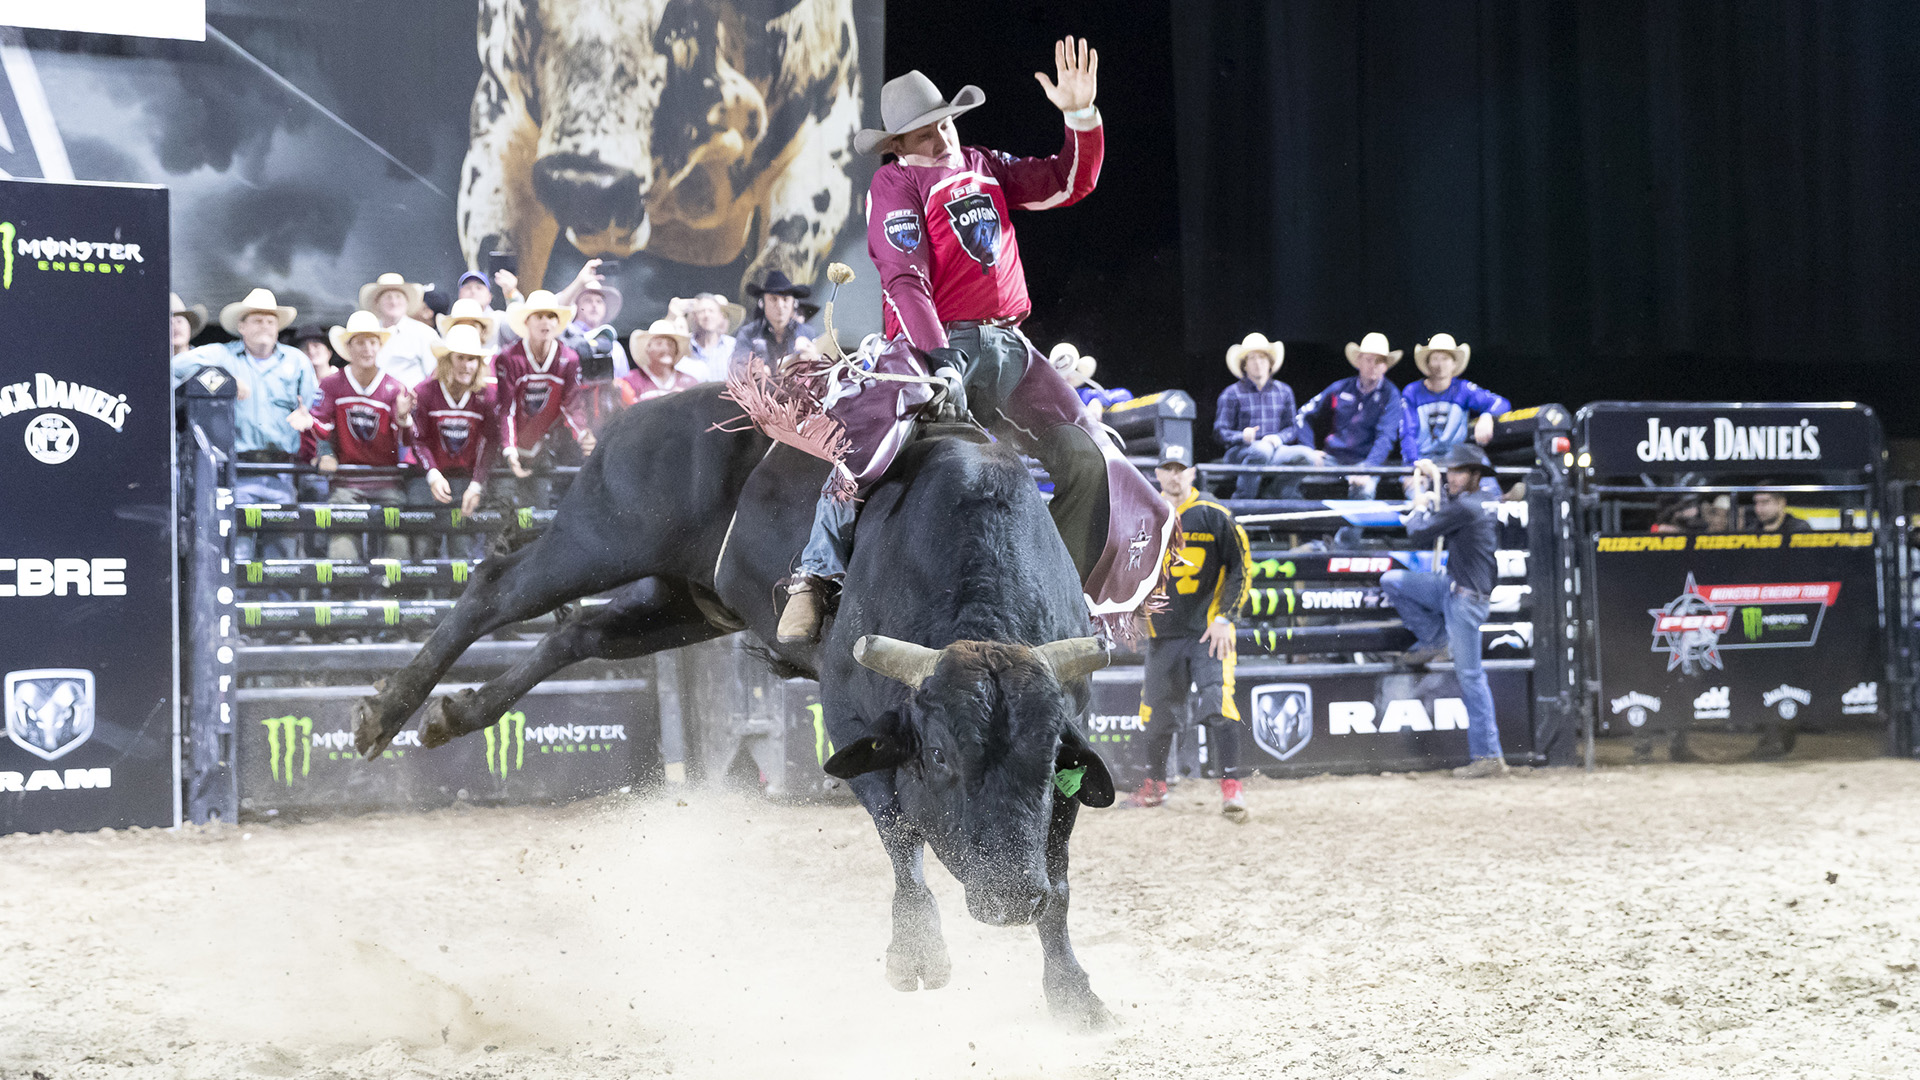 Paton's PBR Australia's Origin co-victory may lead to Global Cup roster spot